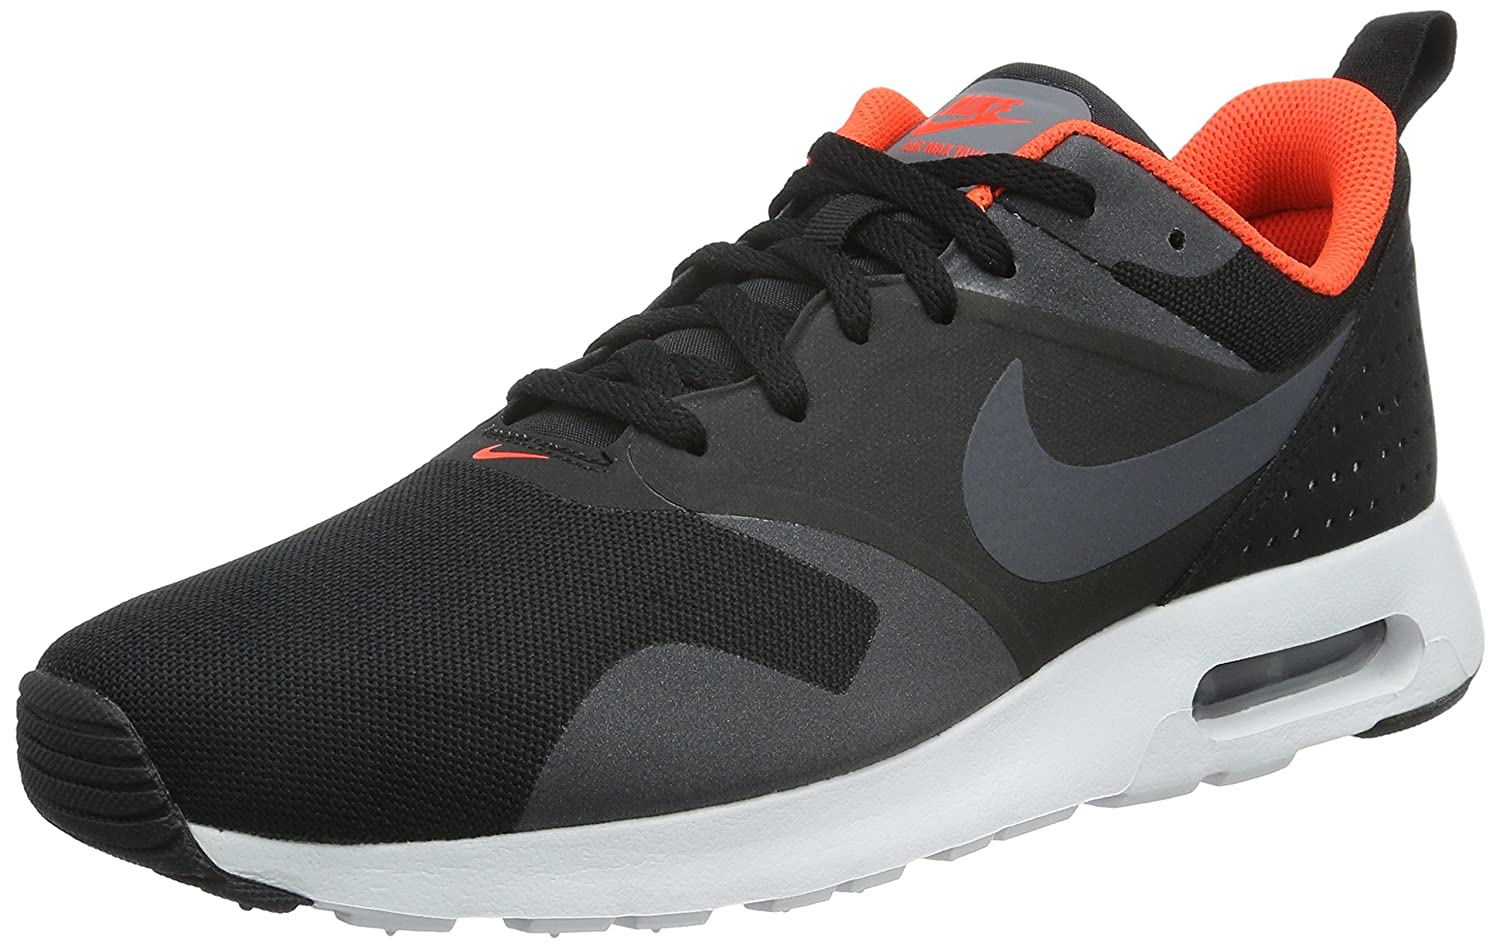 Nike Herren Air Max Tavas Tavas Tavas Low-Top 906002